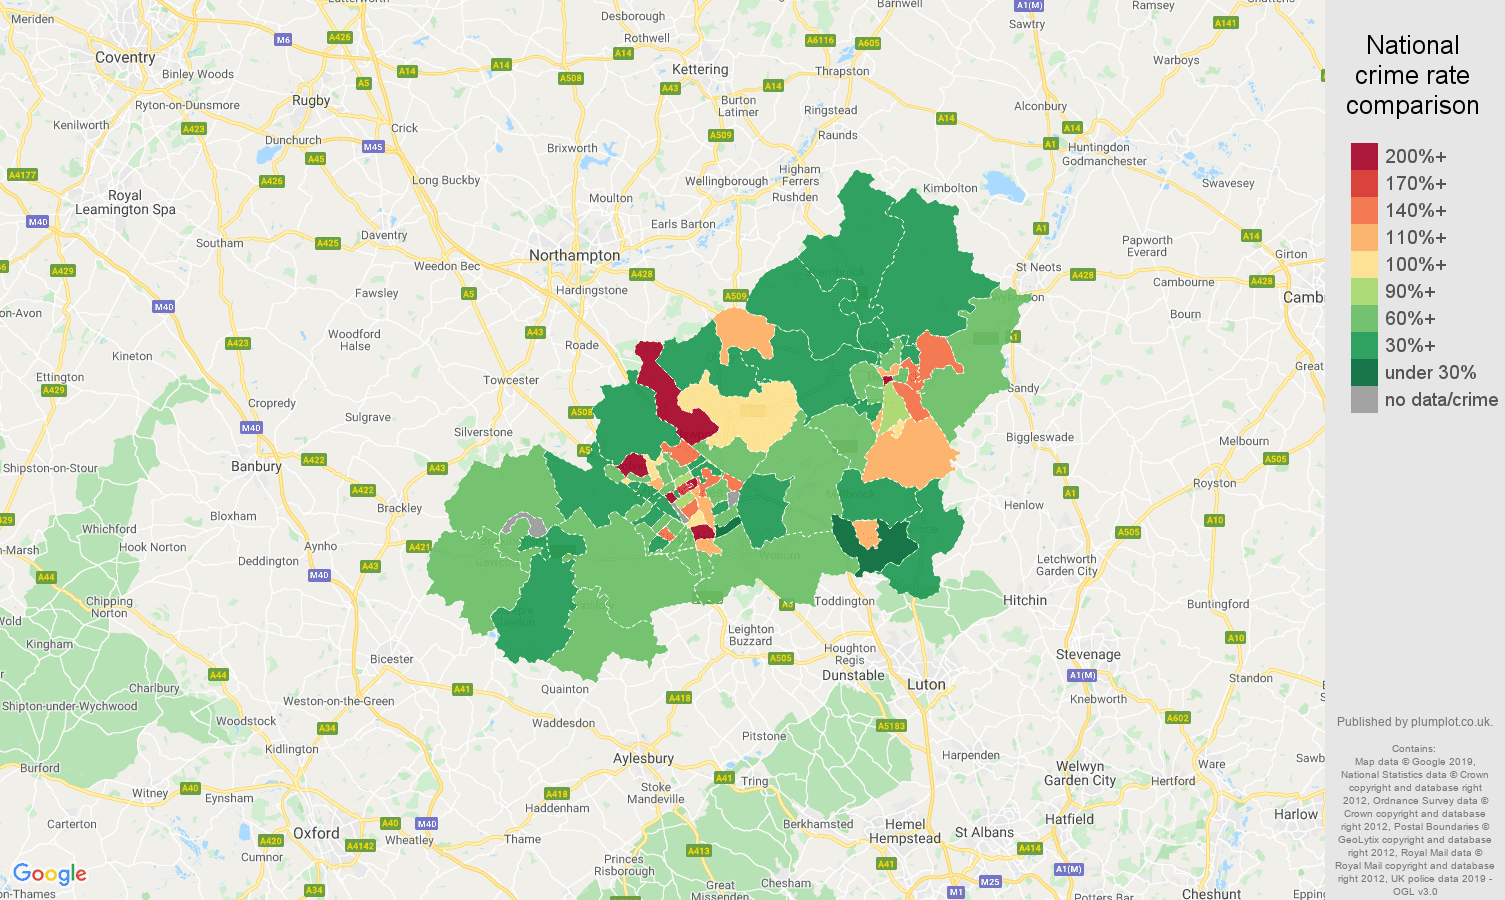 Milton Keynes other theft crime rate comparison map